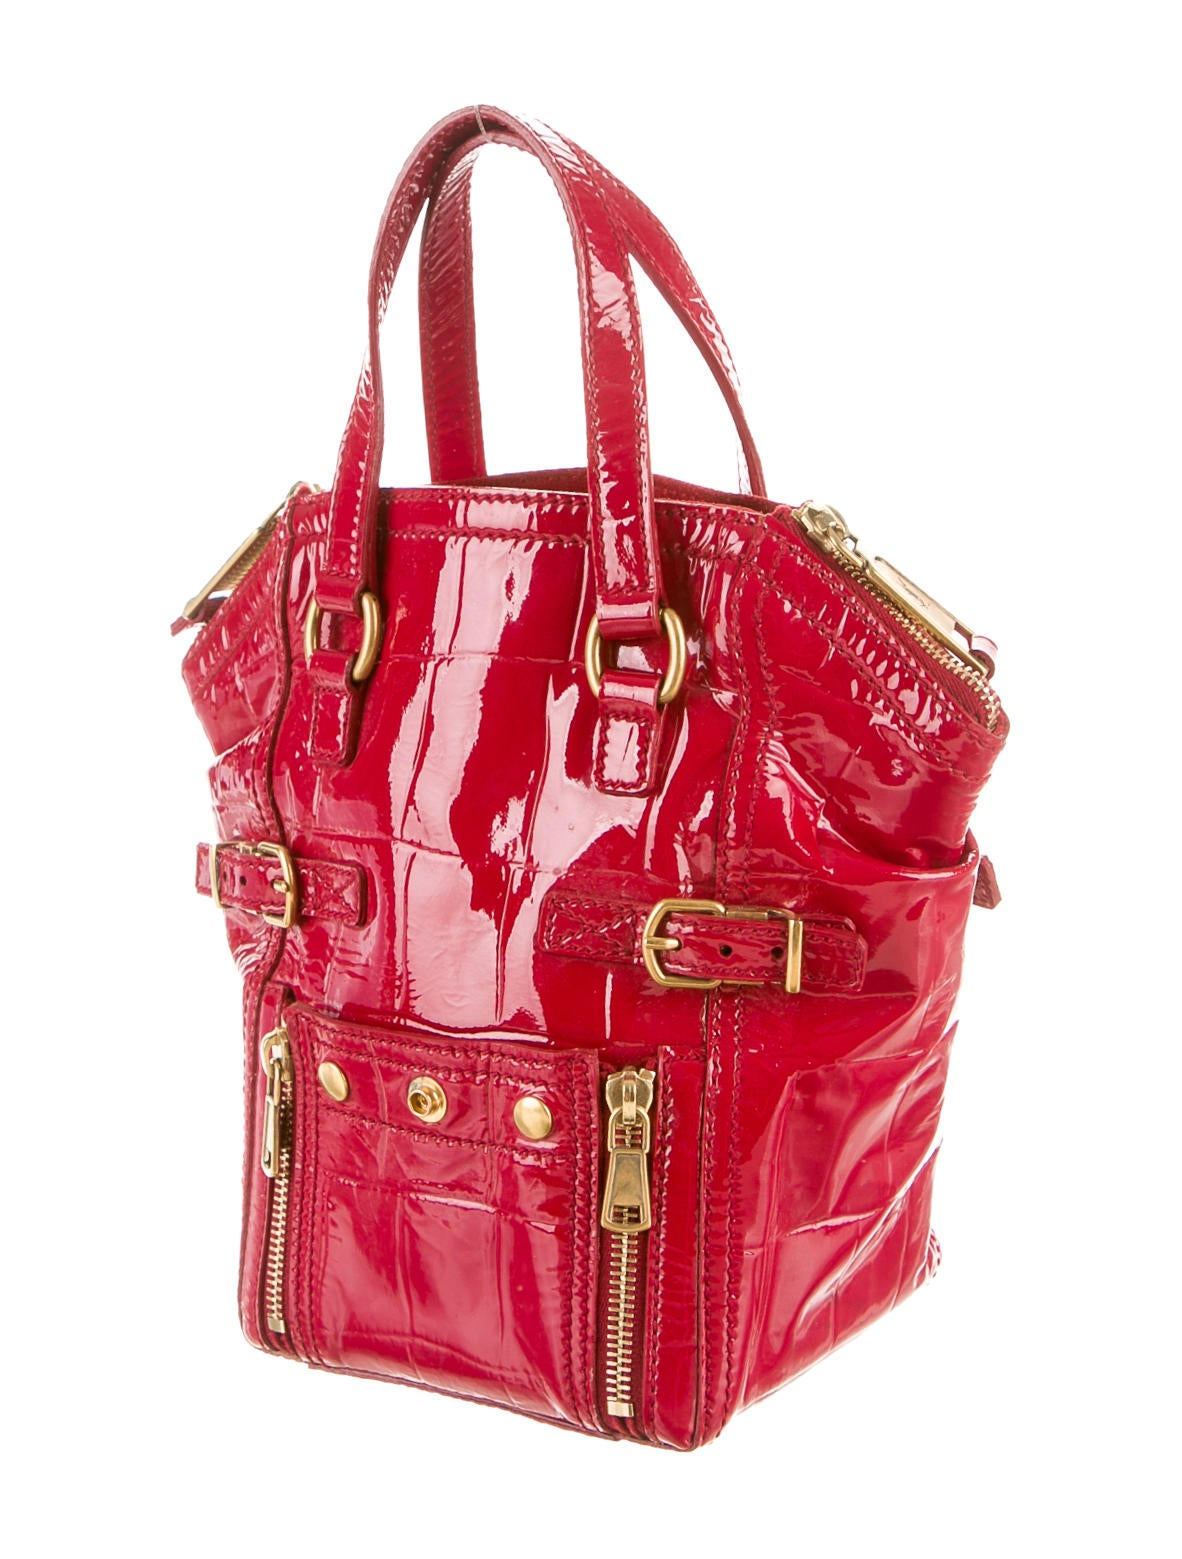 y handbags - Yves Saint Laurent Patent Leather Handle Bag - Handbags - YVE38275 ...